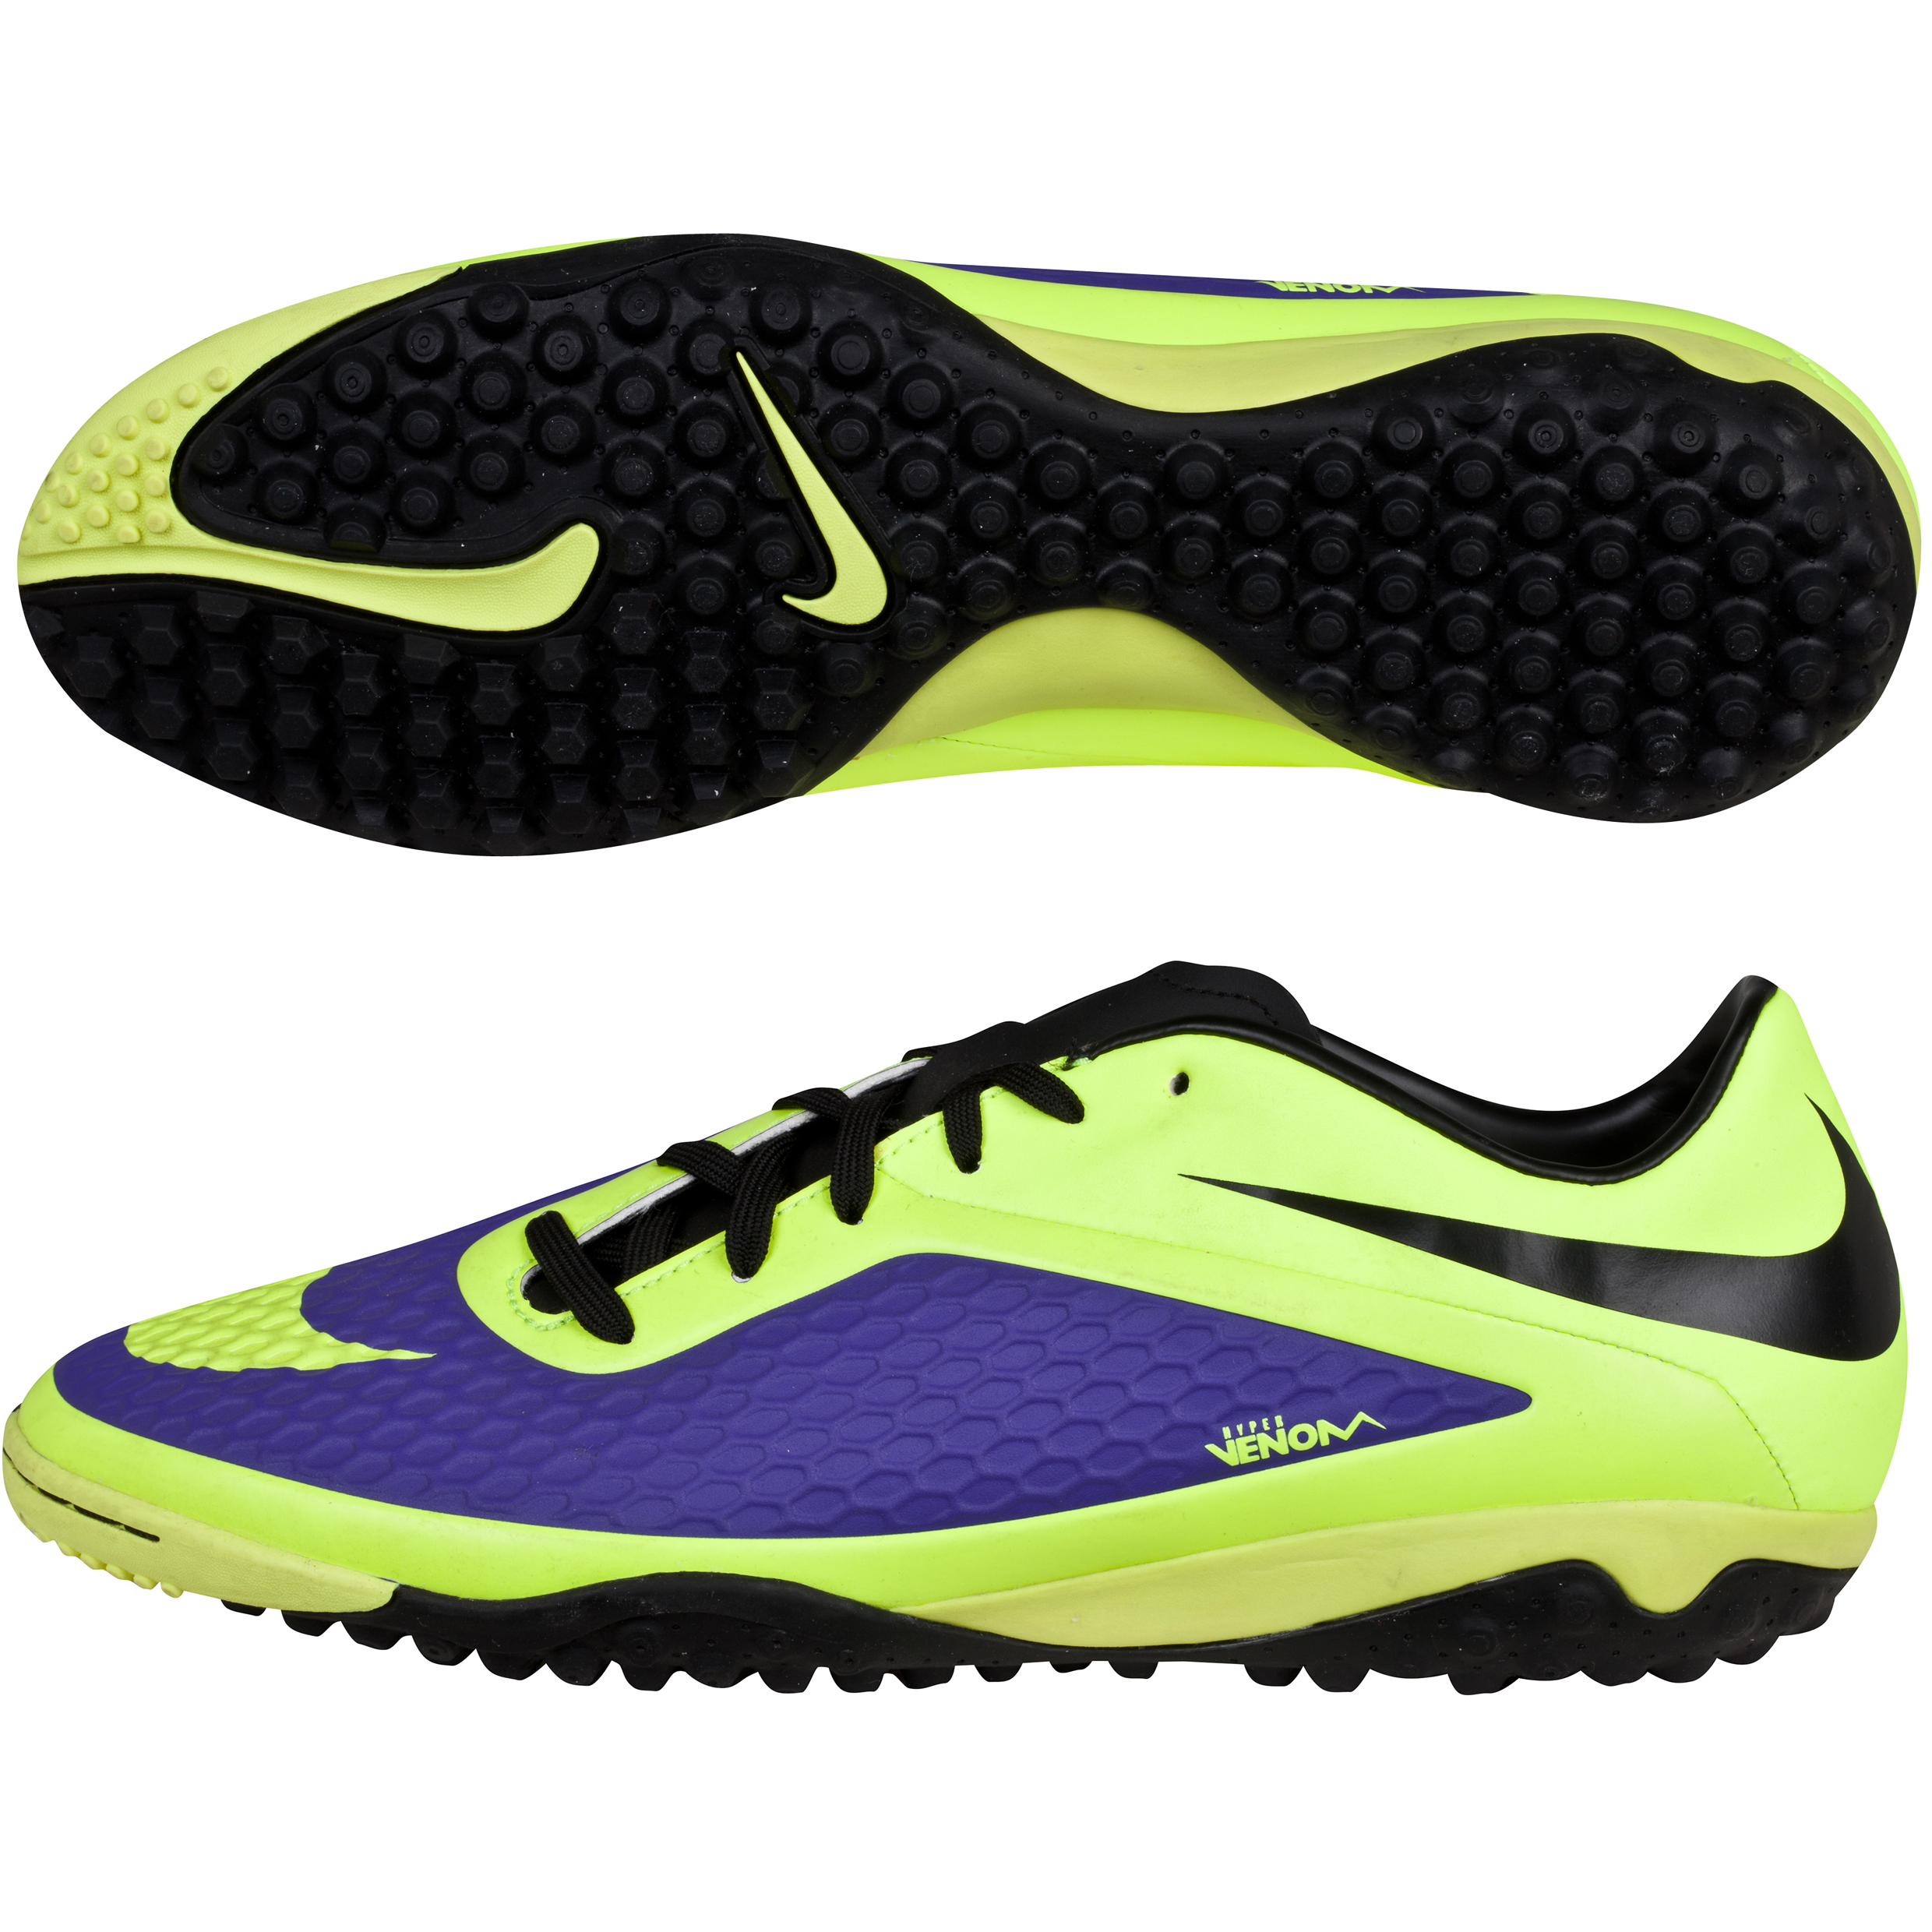 Nike Hypervenom Phelon Astroturf Trainers -Electro Purple/Volt/Black Purple